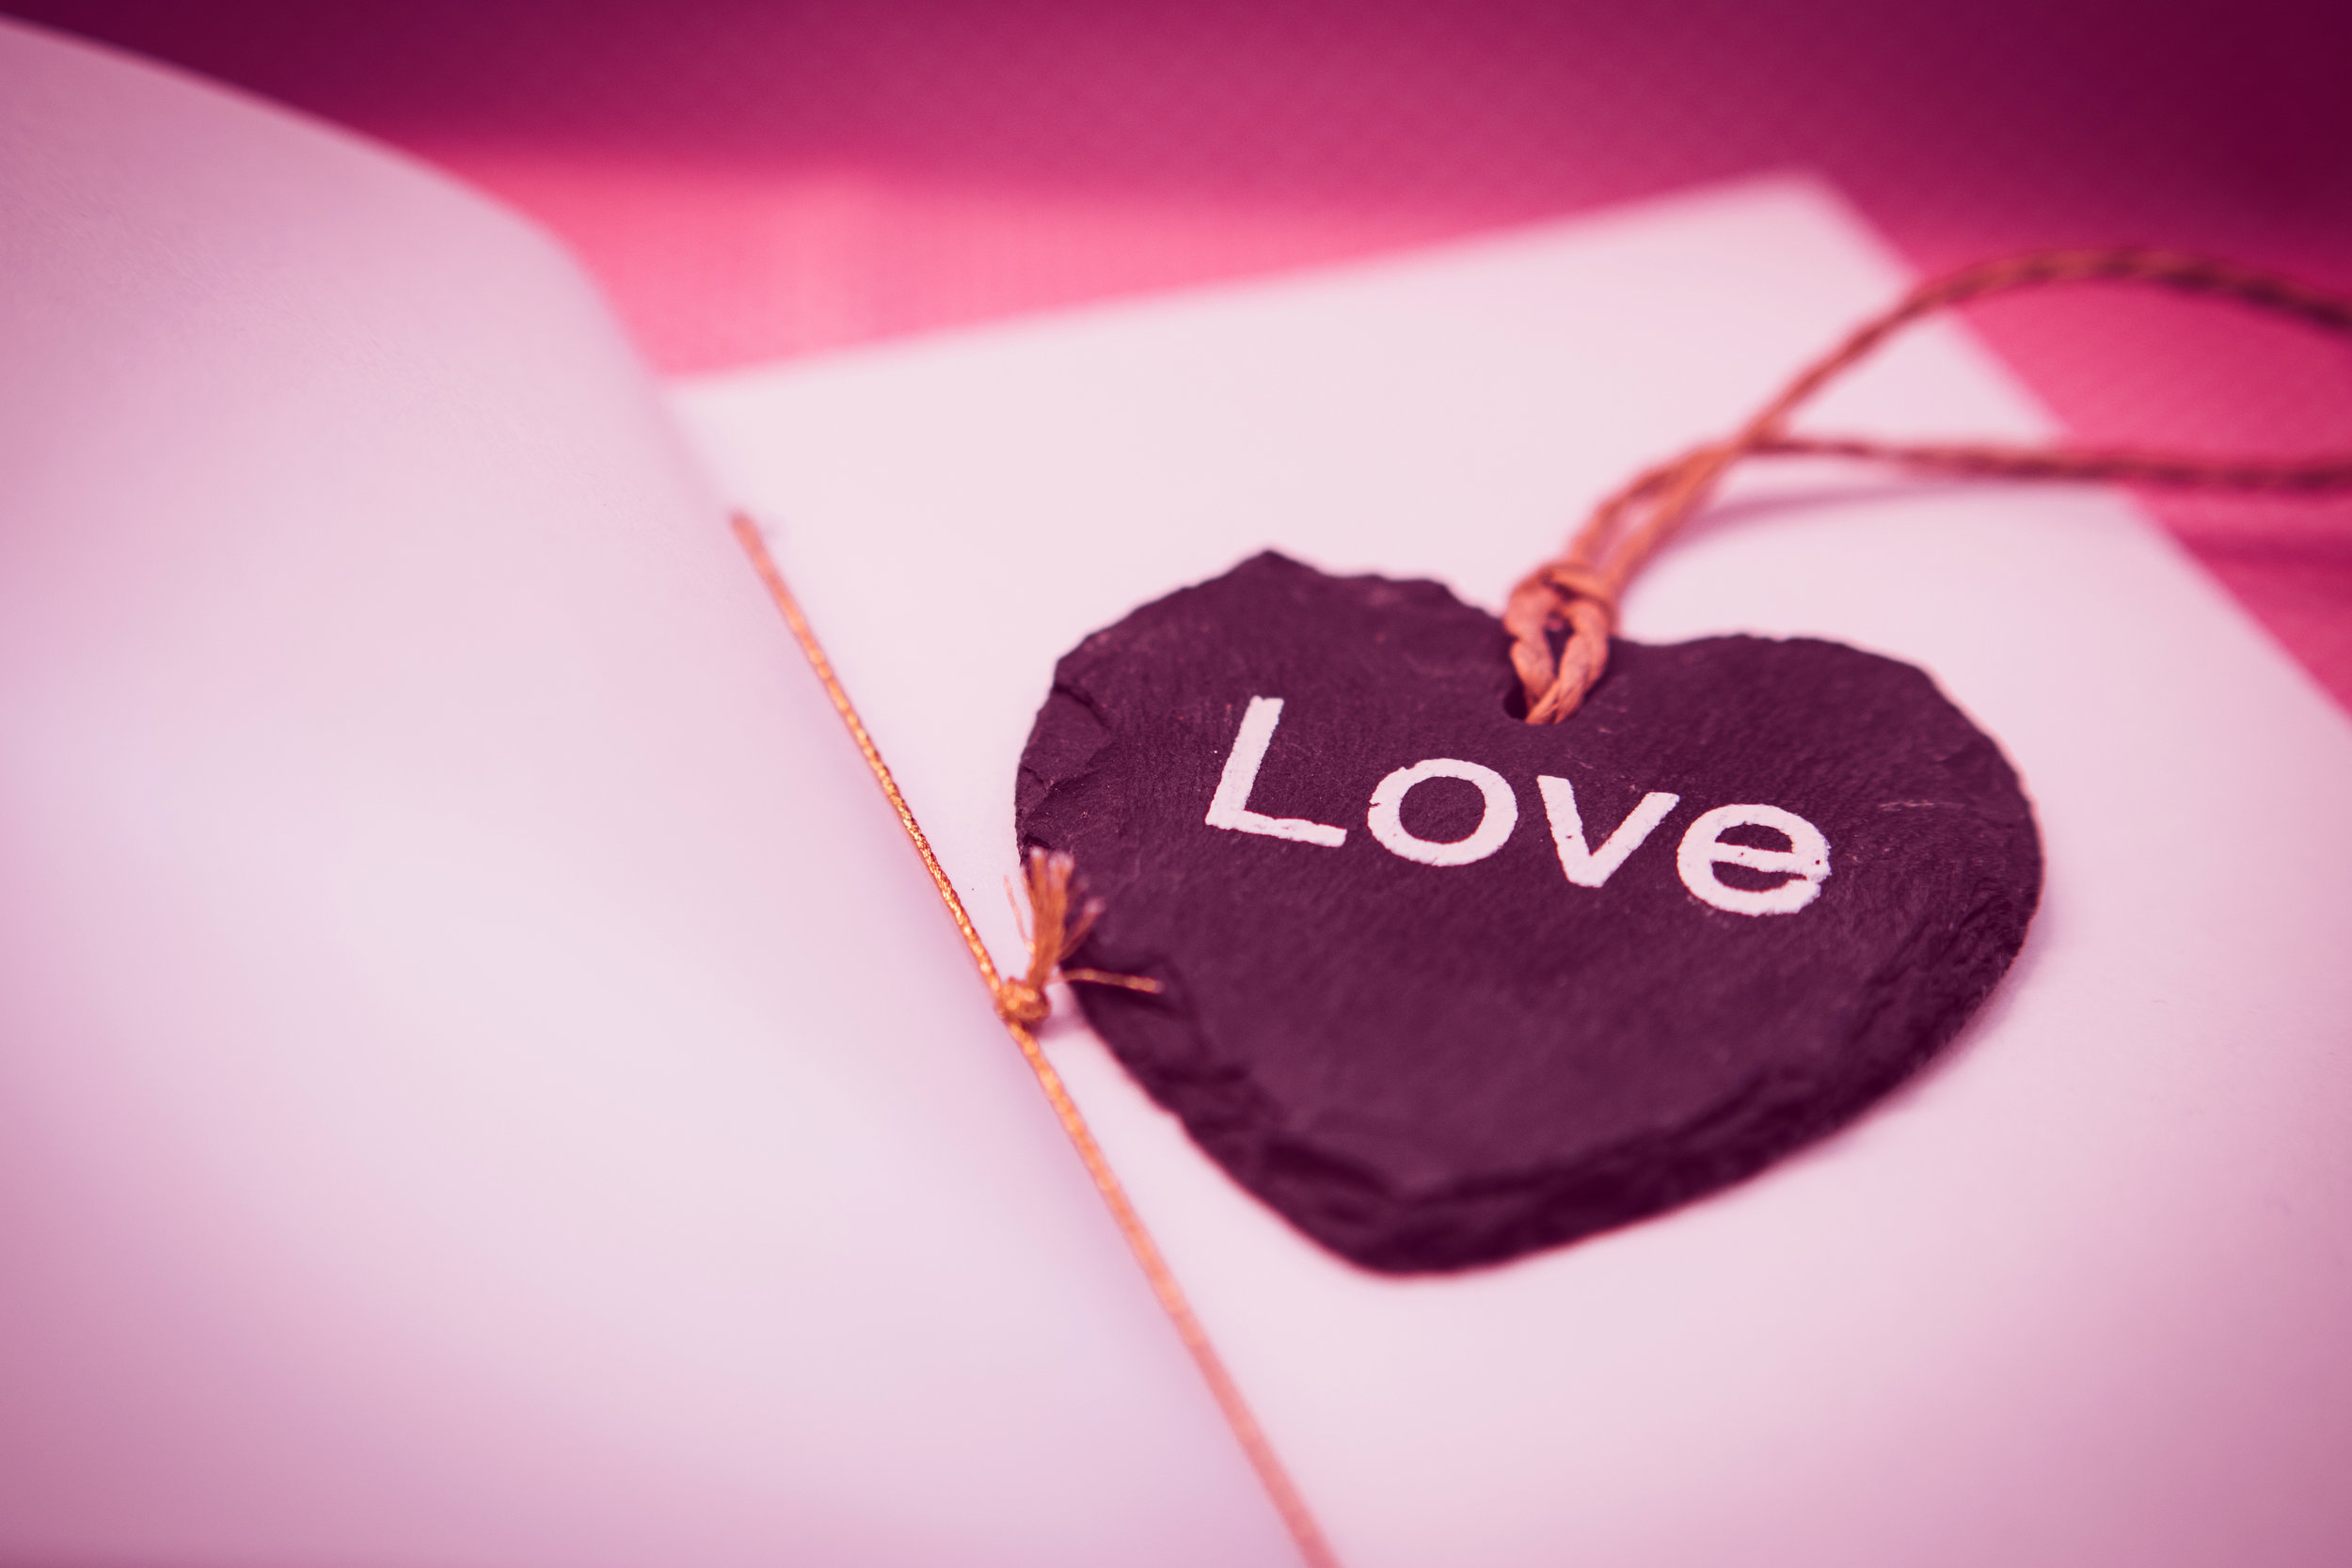 Are you 'in love' with your business?